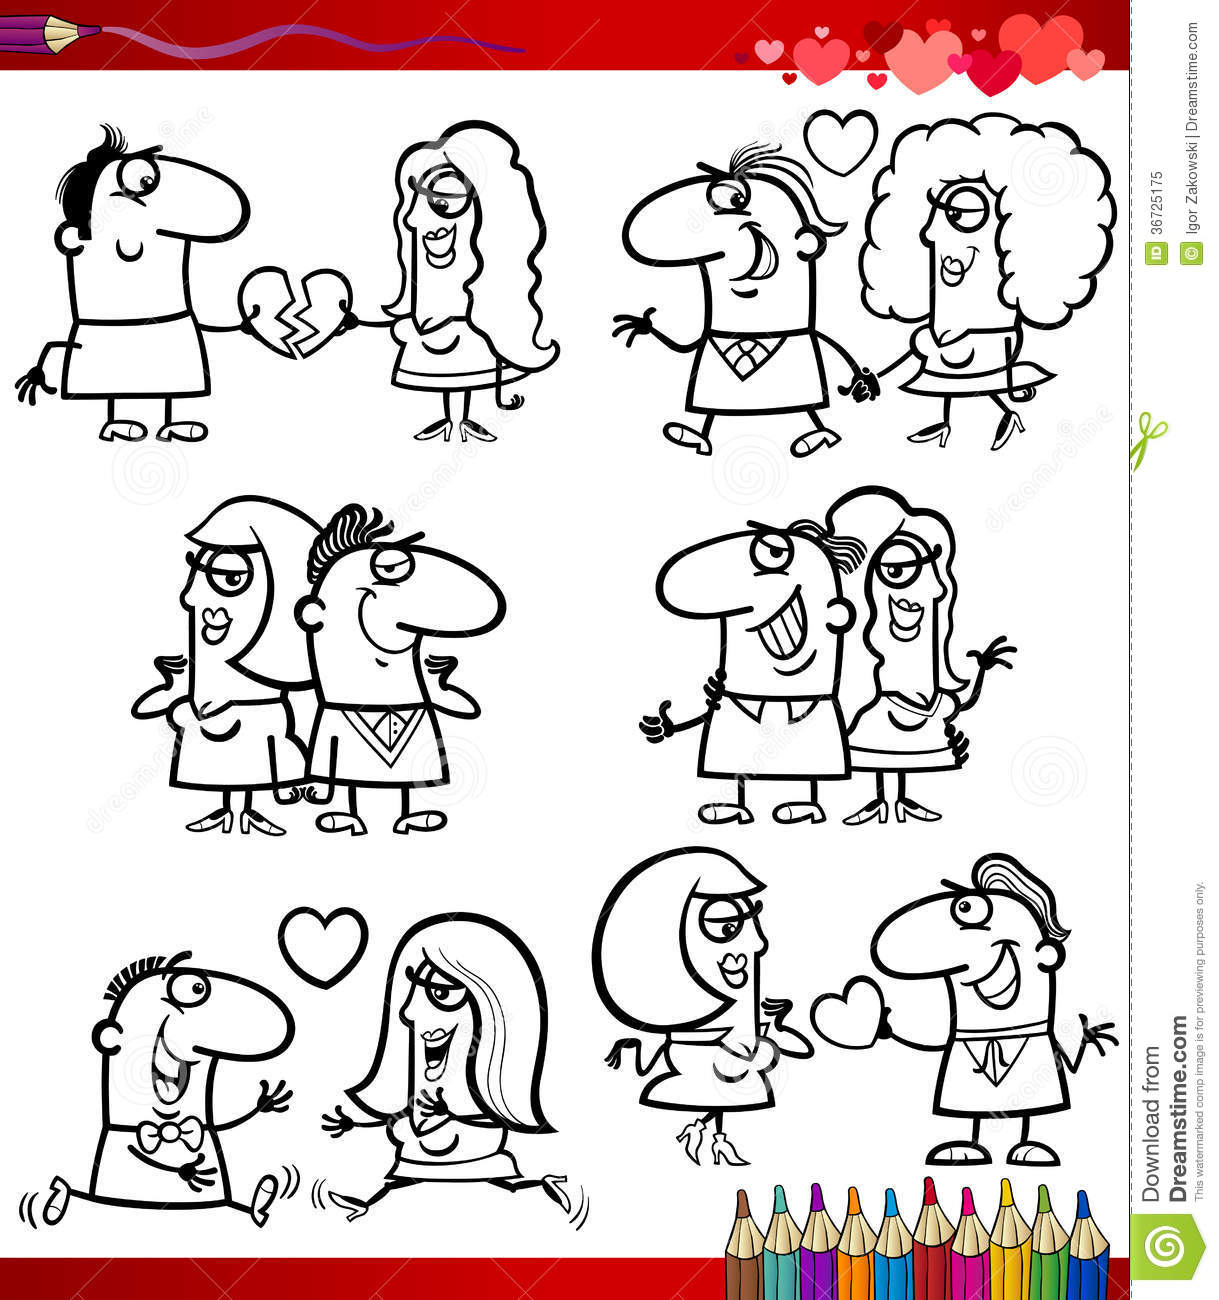 Couple In Love Cartoons Coloring Page Royalty Free Stock Photo - Image ...